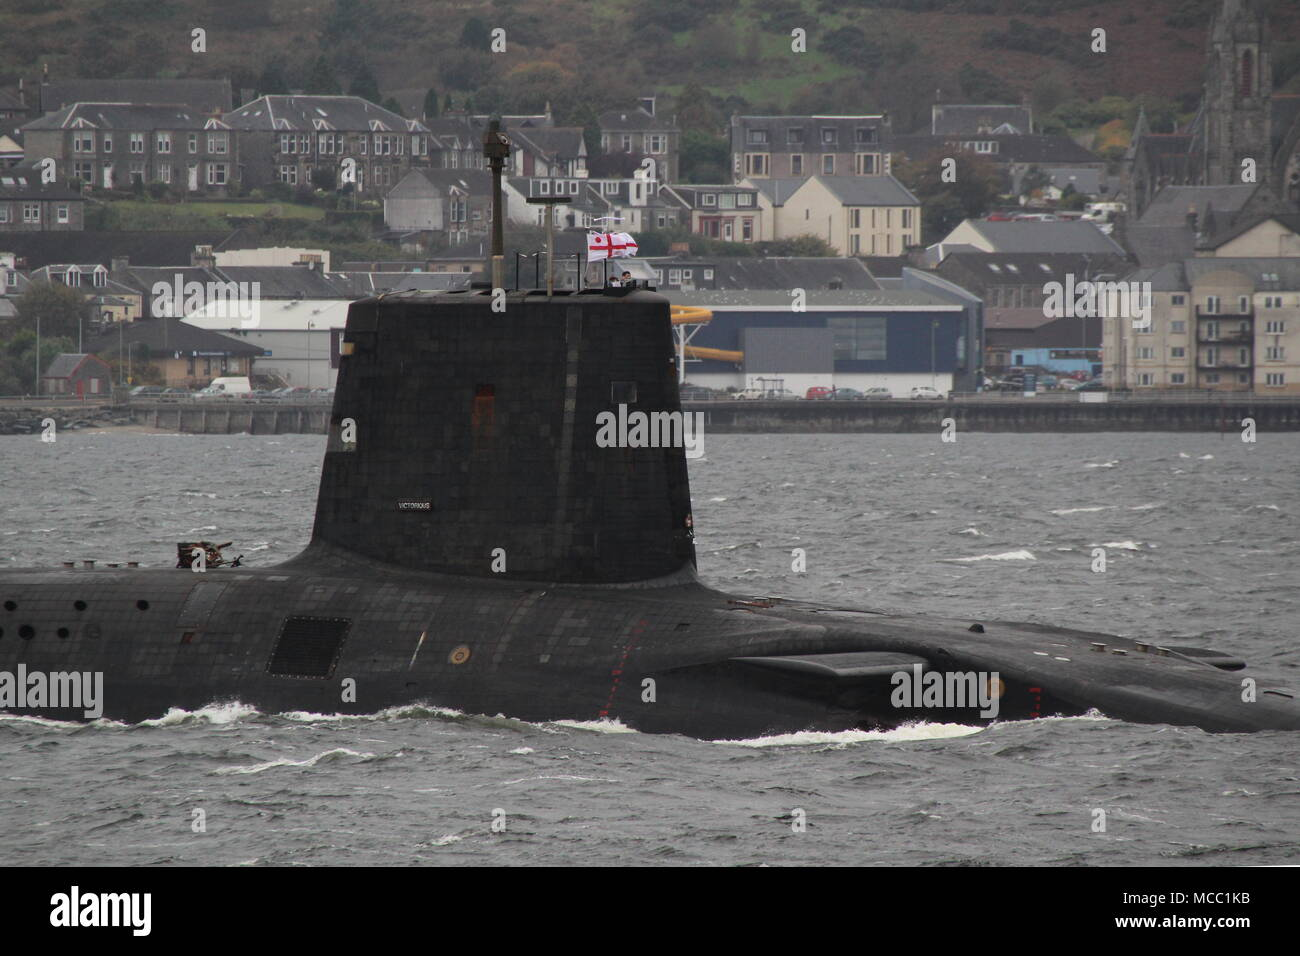 HMS Victorious (S29), a Vanguard-class submarine operated by the Royal Navy, passing Gourock on an inbound journey to the Faslane naval base. - Stock Image